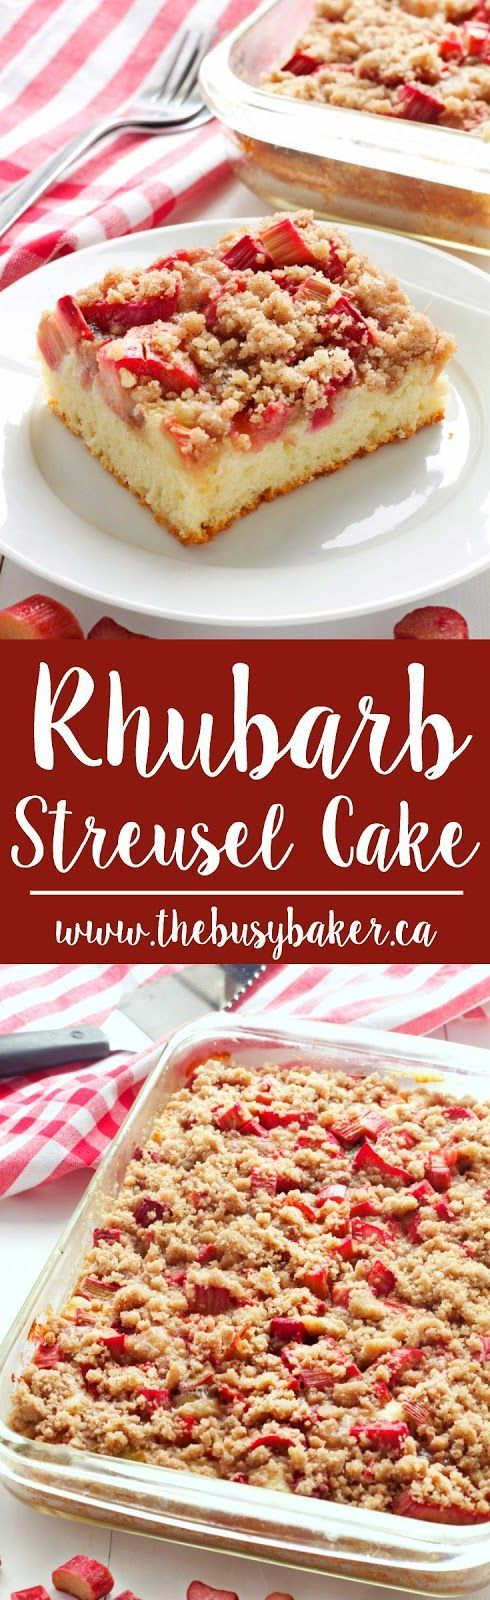 This Rhubarb Streusel Cake is the best cake for summer! www.thebusybaker.ca